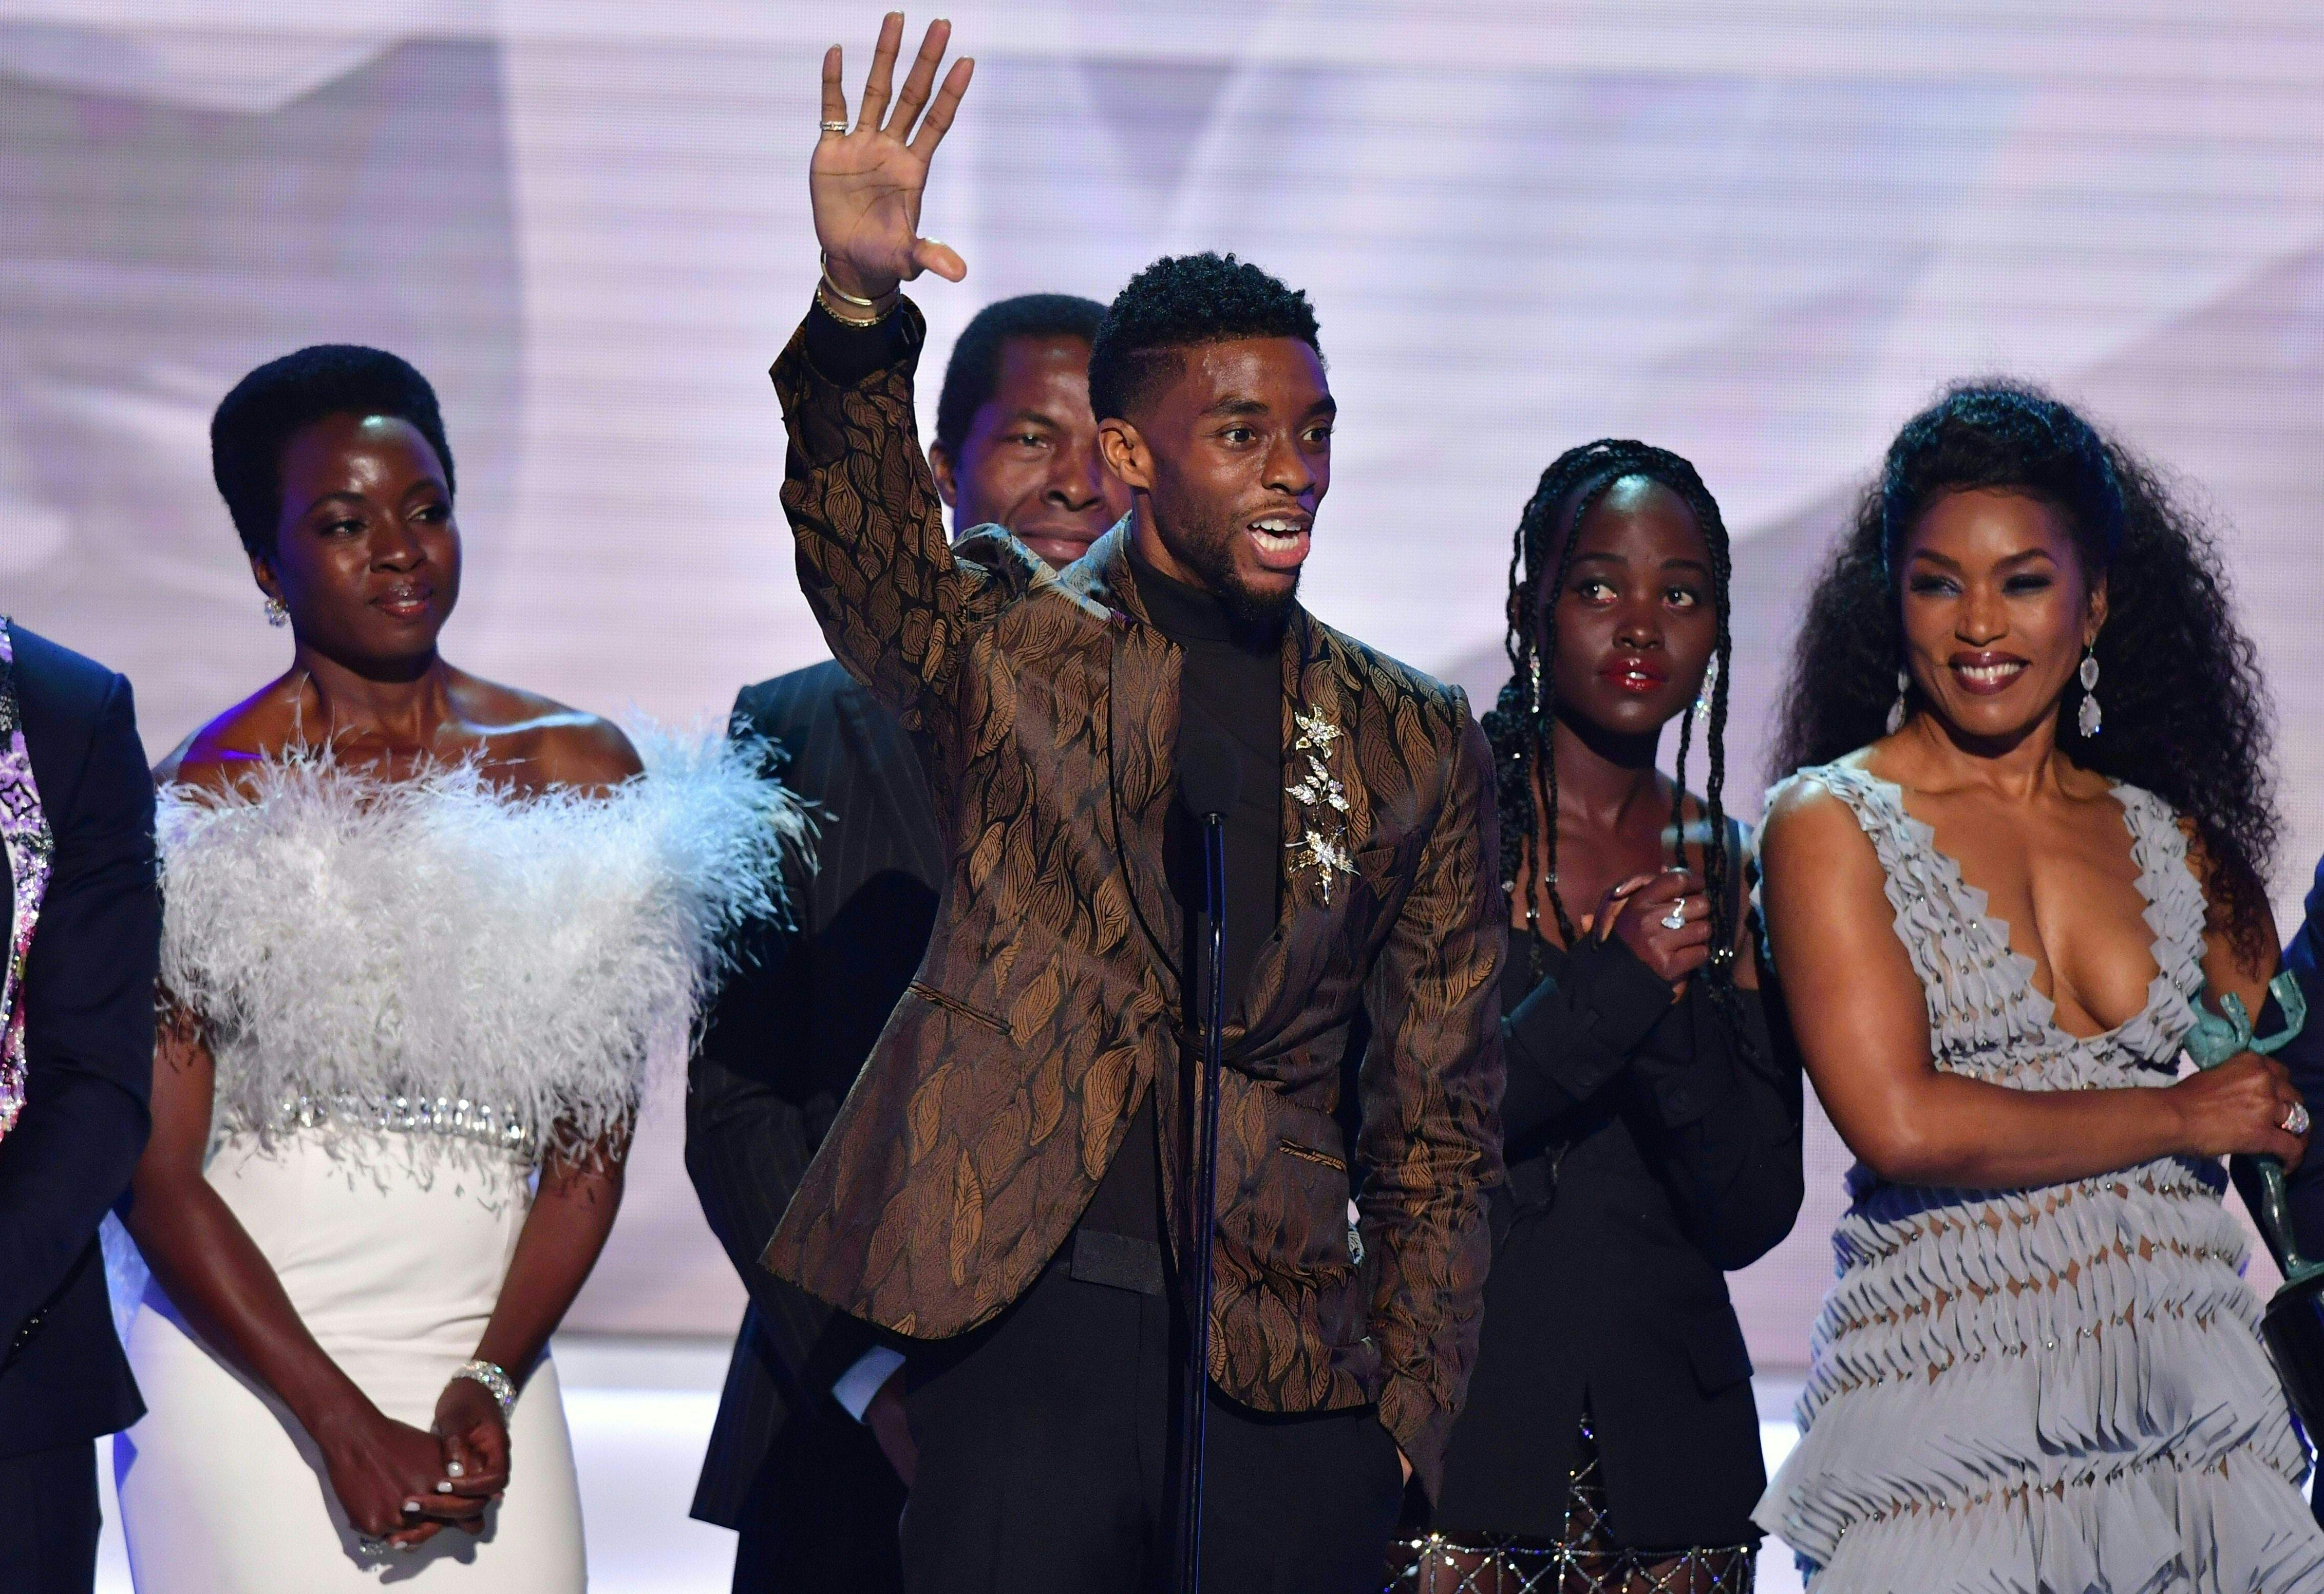 "(L-R) Danai Gurira, Chadwick Boseman, Lupita Nyong'o, Angela Bassett and the cast of ""Black Panther"" accept the award for best Cast In A Motion Picture, during the 25th Annual Screen Actors Guild Awards show at the Shrine Auditorium in Los Angeles on January 27, 2019. (Photo by Frederic J. BROWN / AFP)"